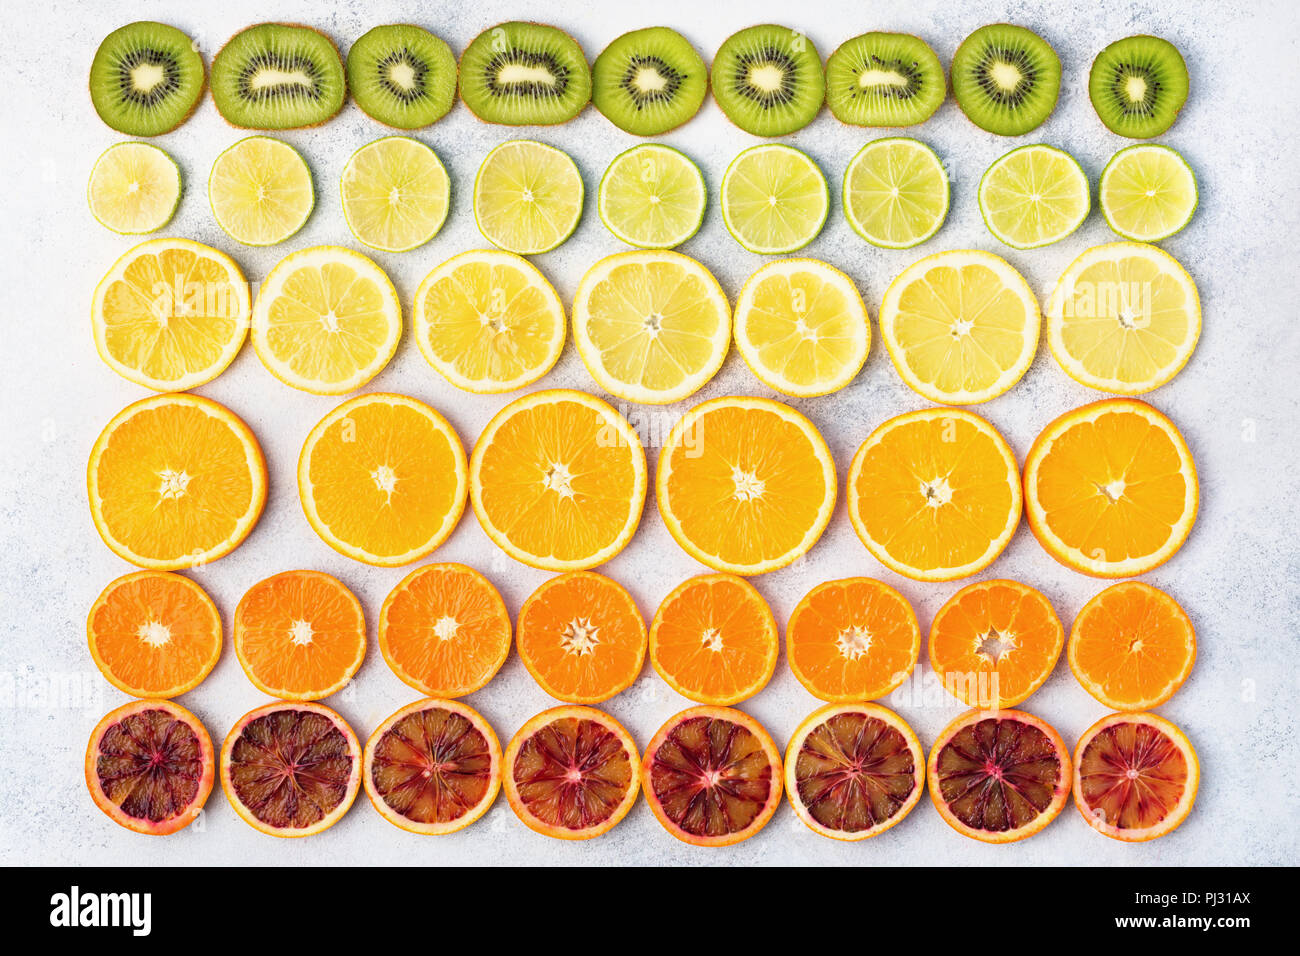 Different varieties of citrus fruits, oranges, lemons, limes, kiwis arranged in the rows. Colorful background, top view - Stock Image